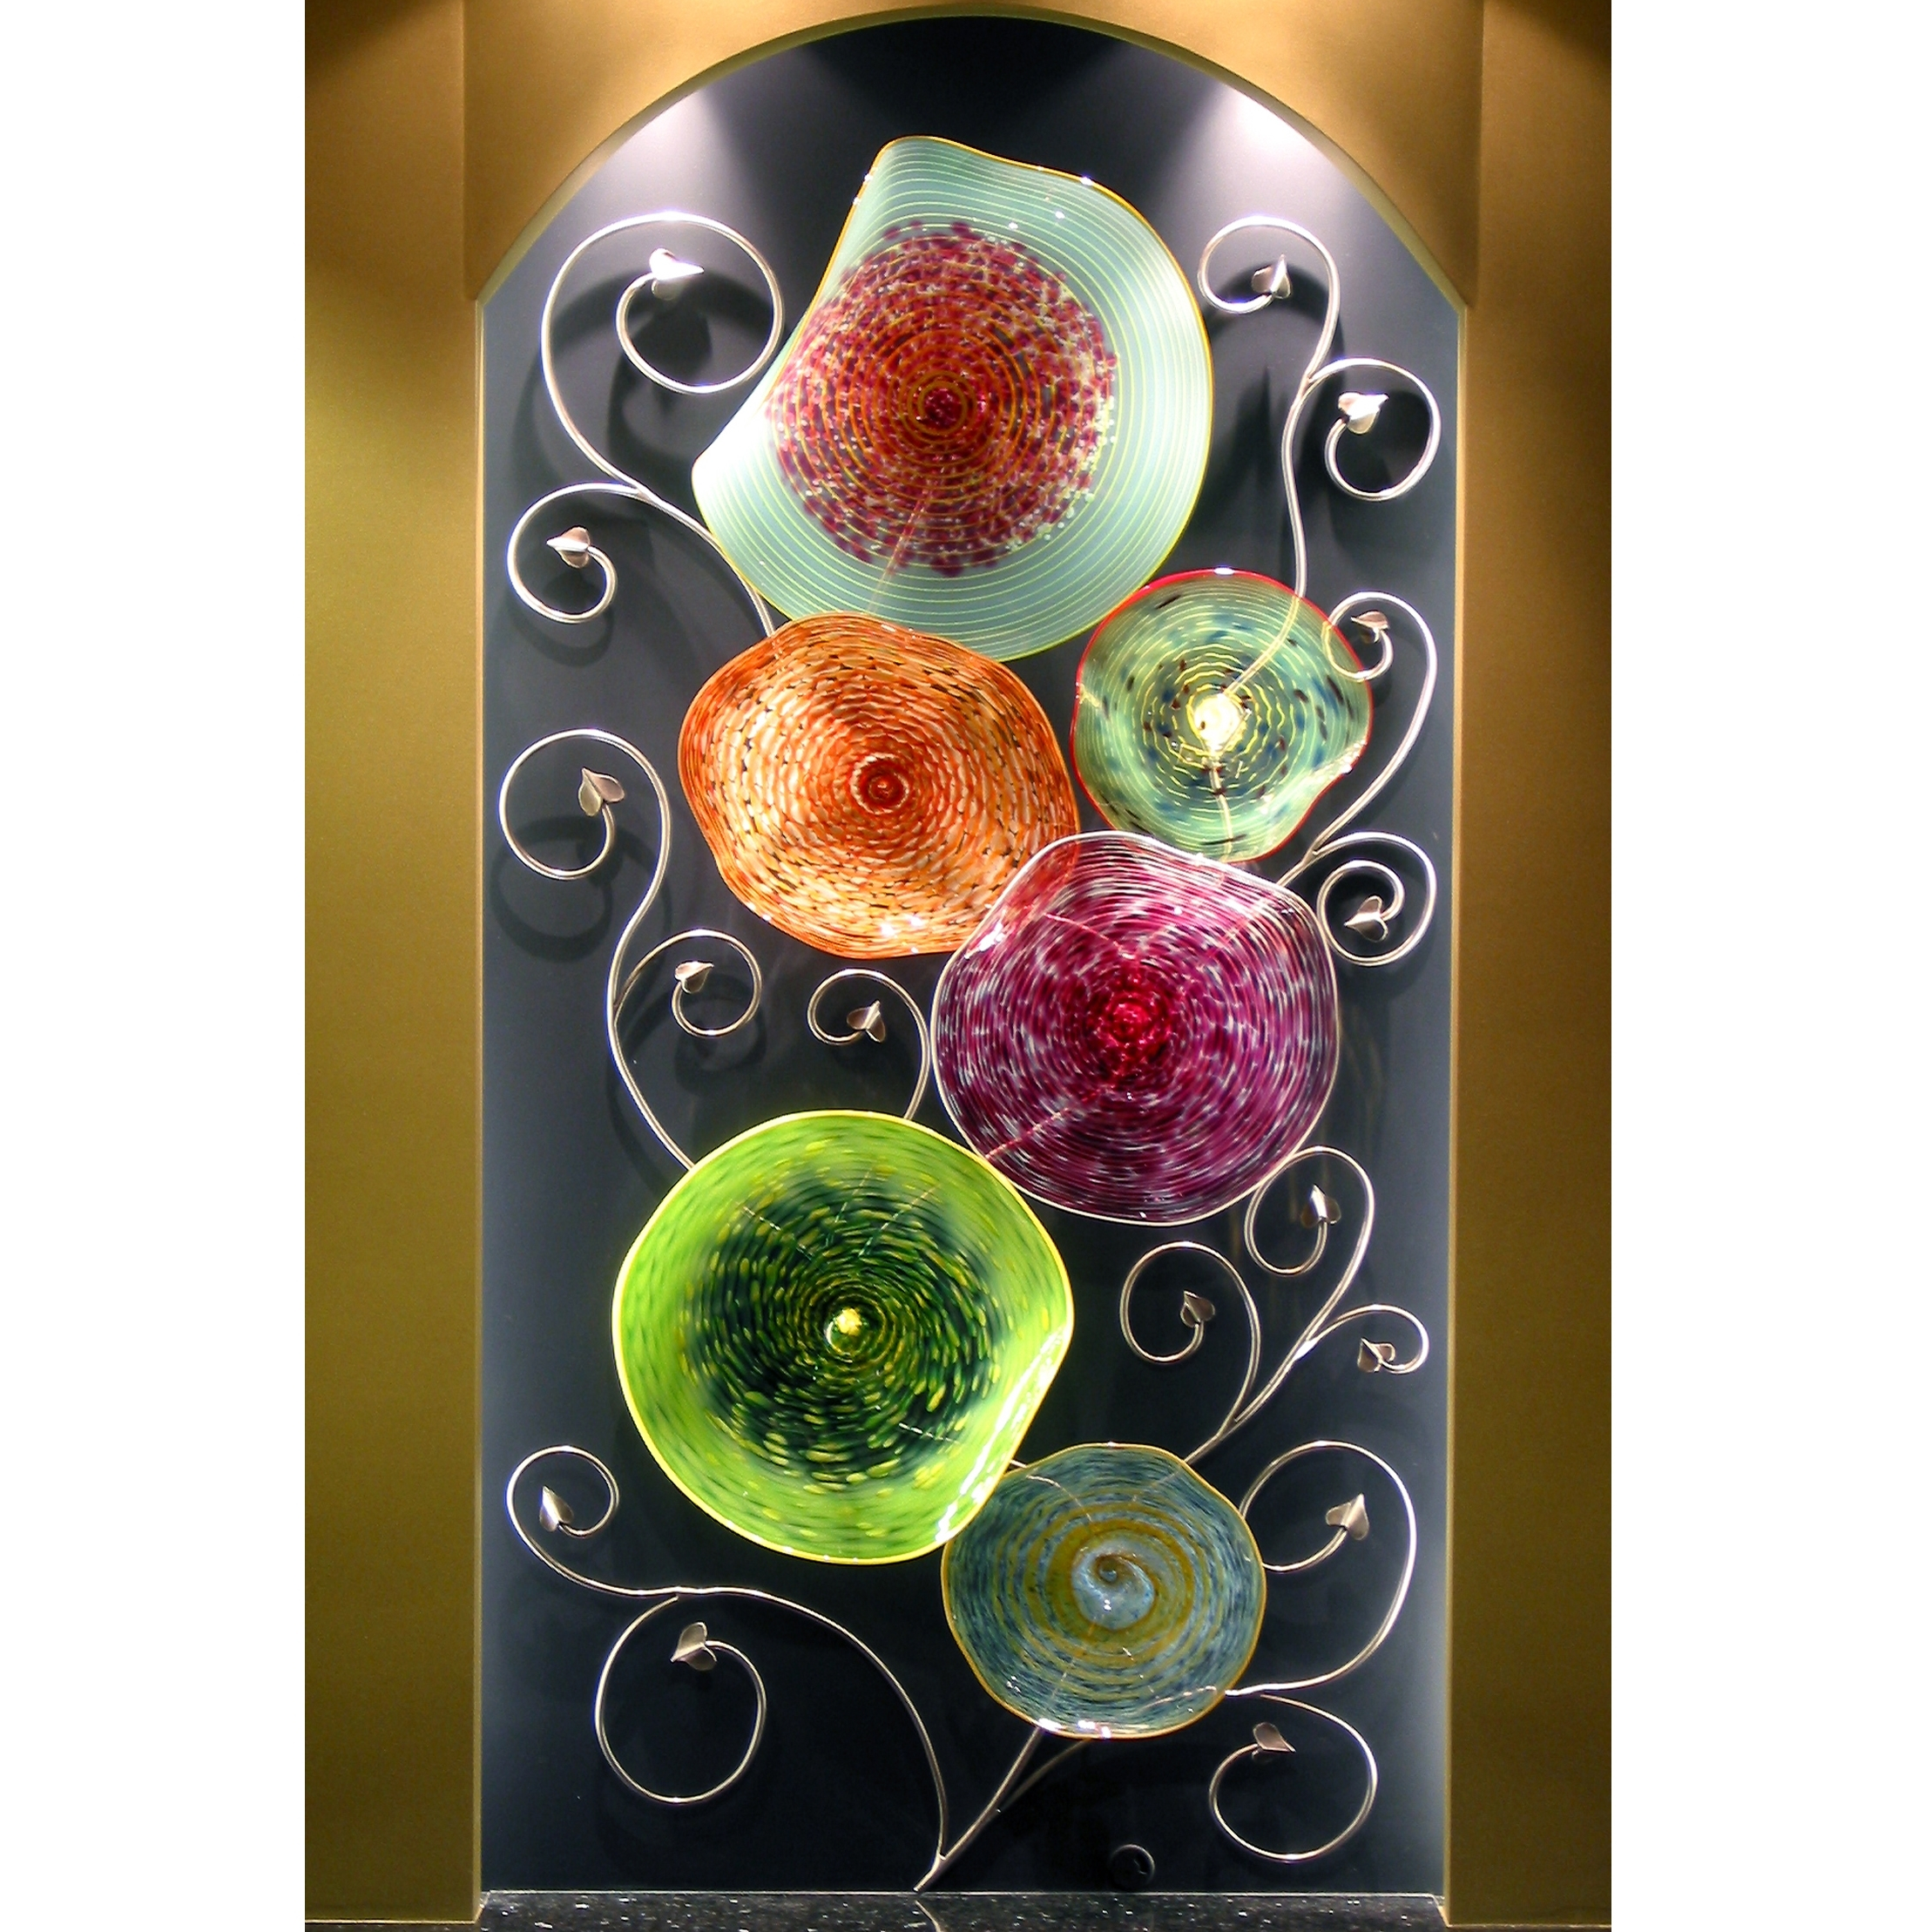 Hand Blown Glass Wall Art Sculpture | Artisan Crafted Home Within Latest Blown Glass Wall Art (Gallery 10 of 20)